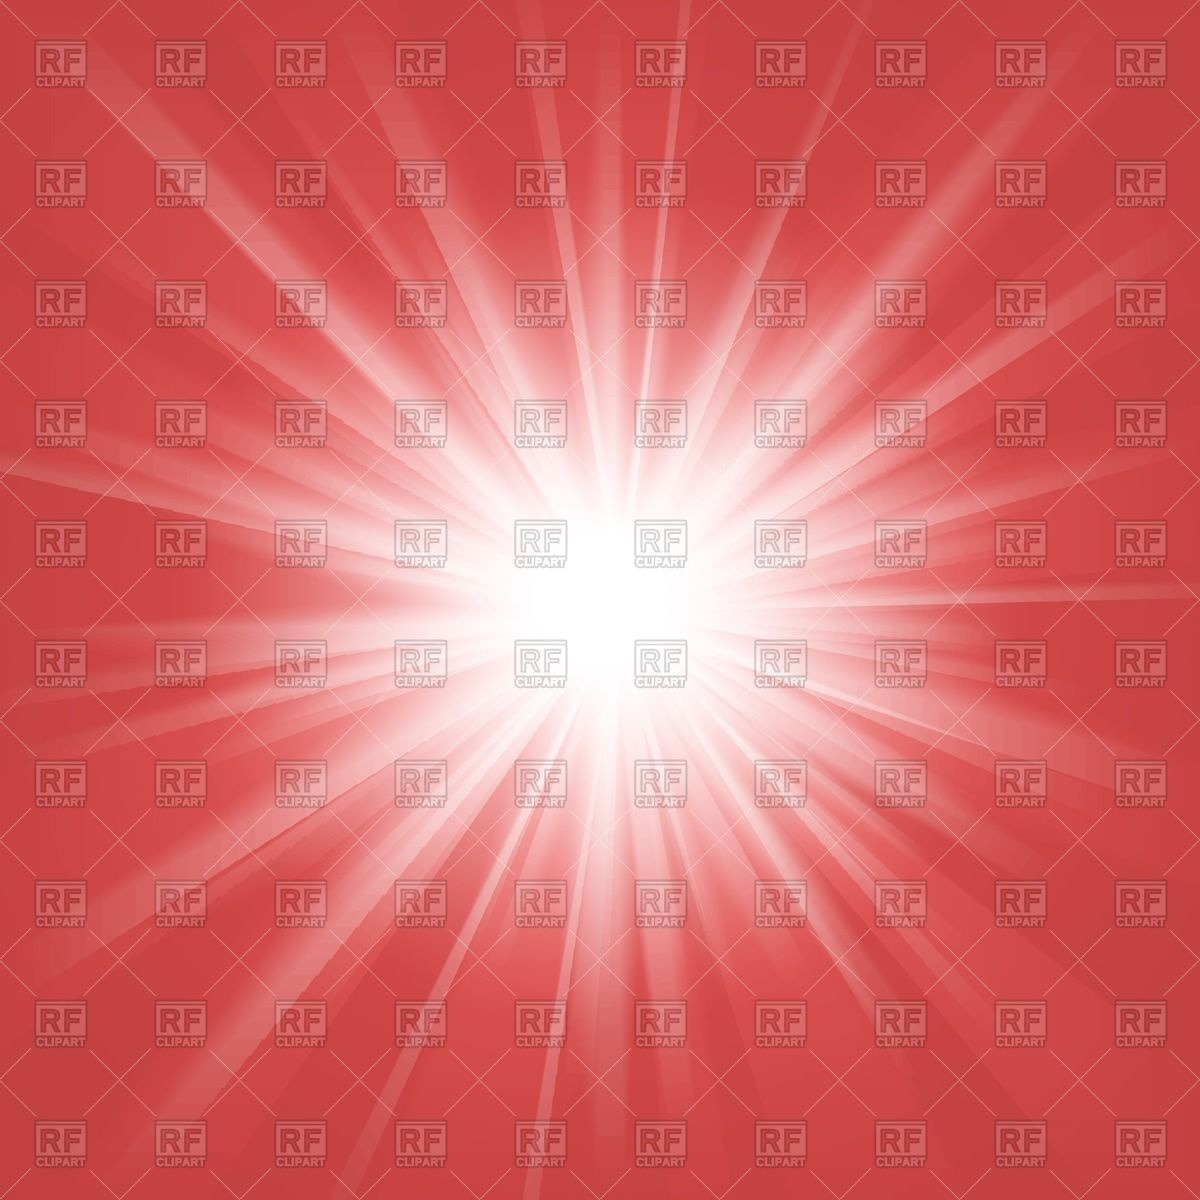 Flash of light on red background   outburst Vector Image of 1200x1200